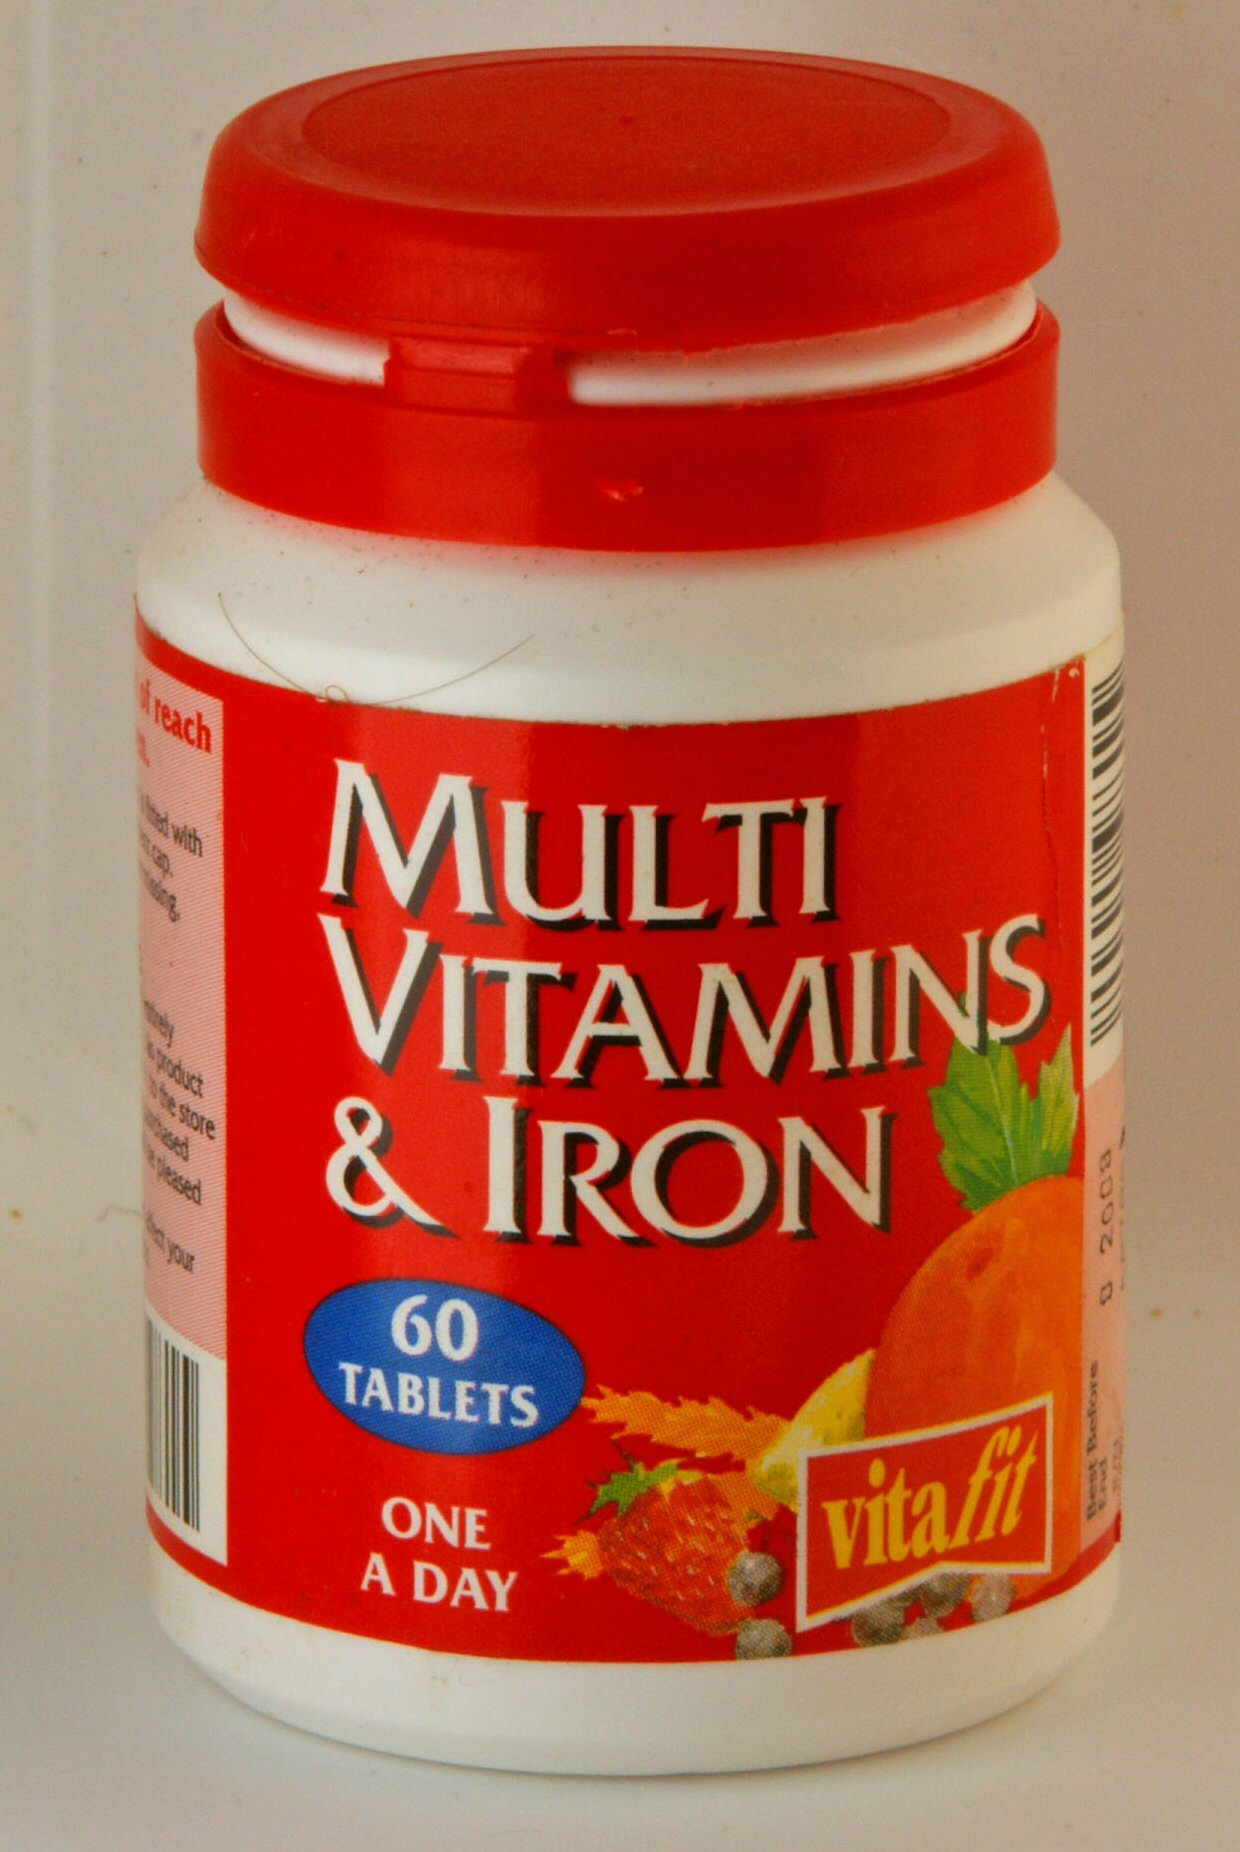 Iron Supplementation Typically Not Recommended for Postmenopausal Women